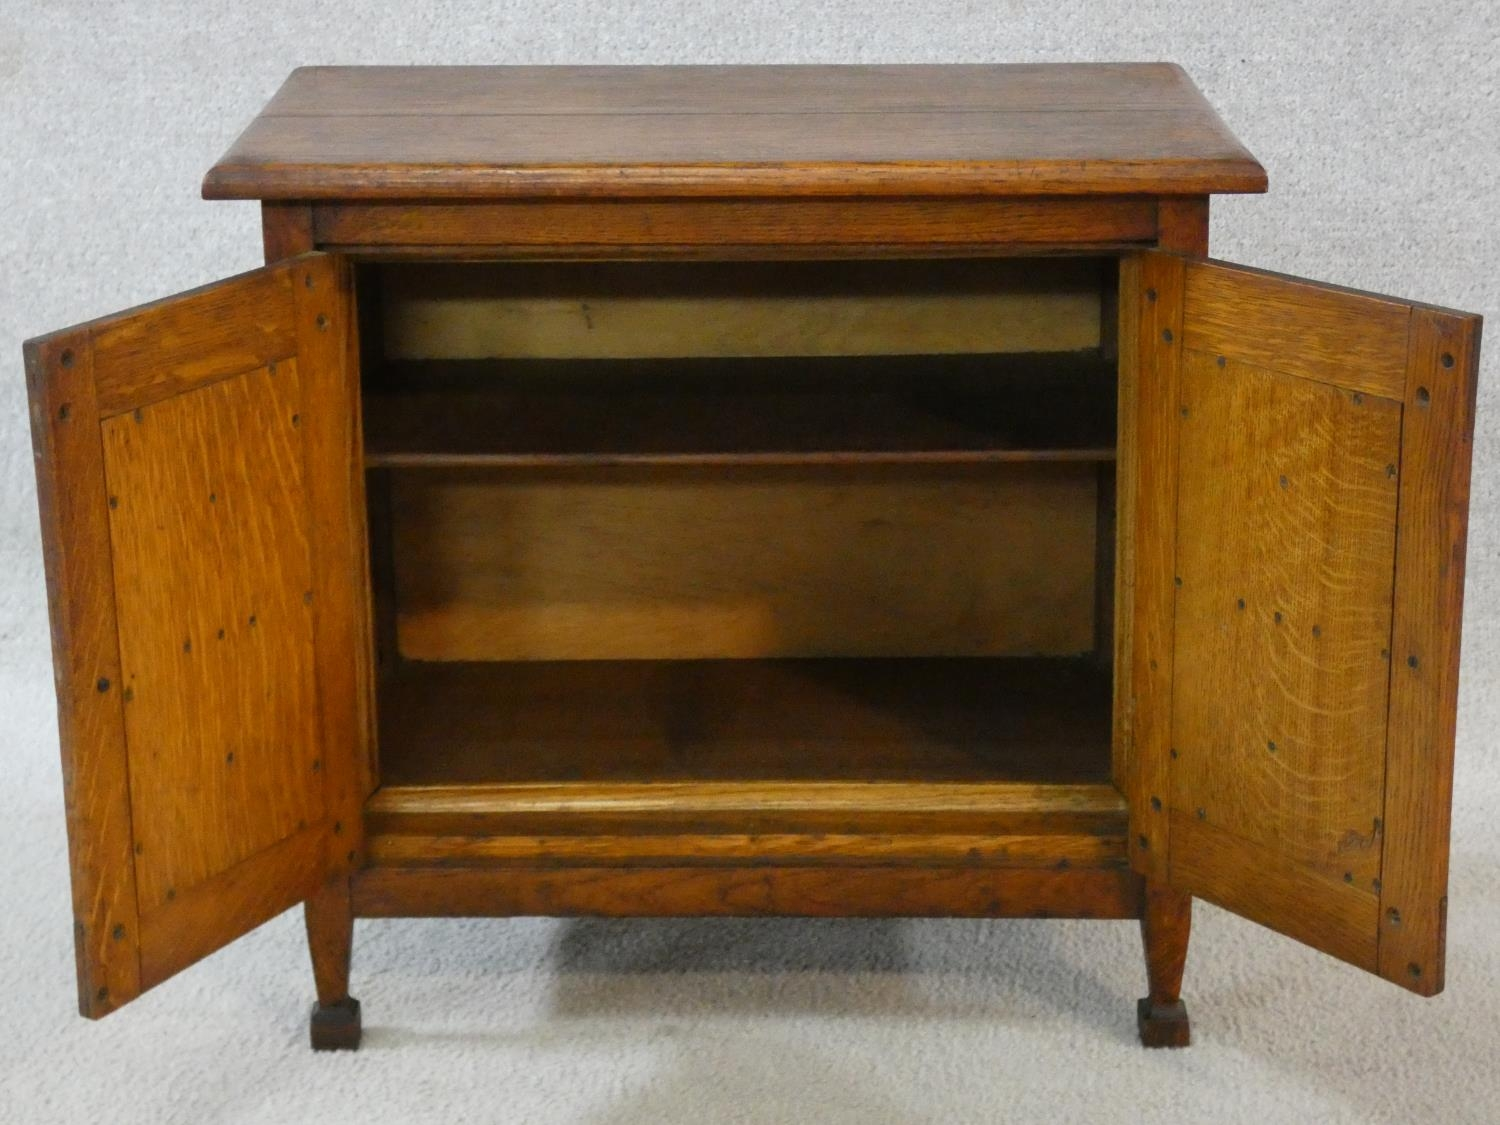 An early 20th century country oak style side cabinet with carved panel doors on squat square - Image 13 of 14